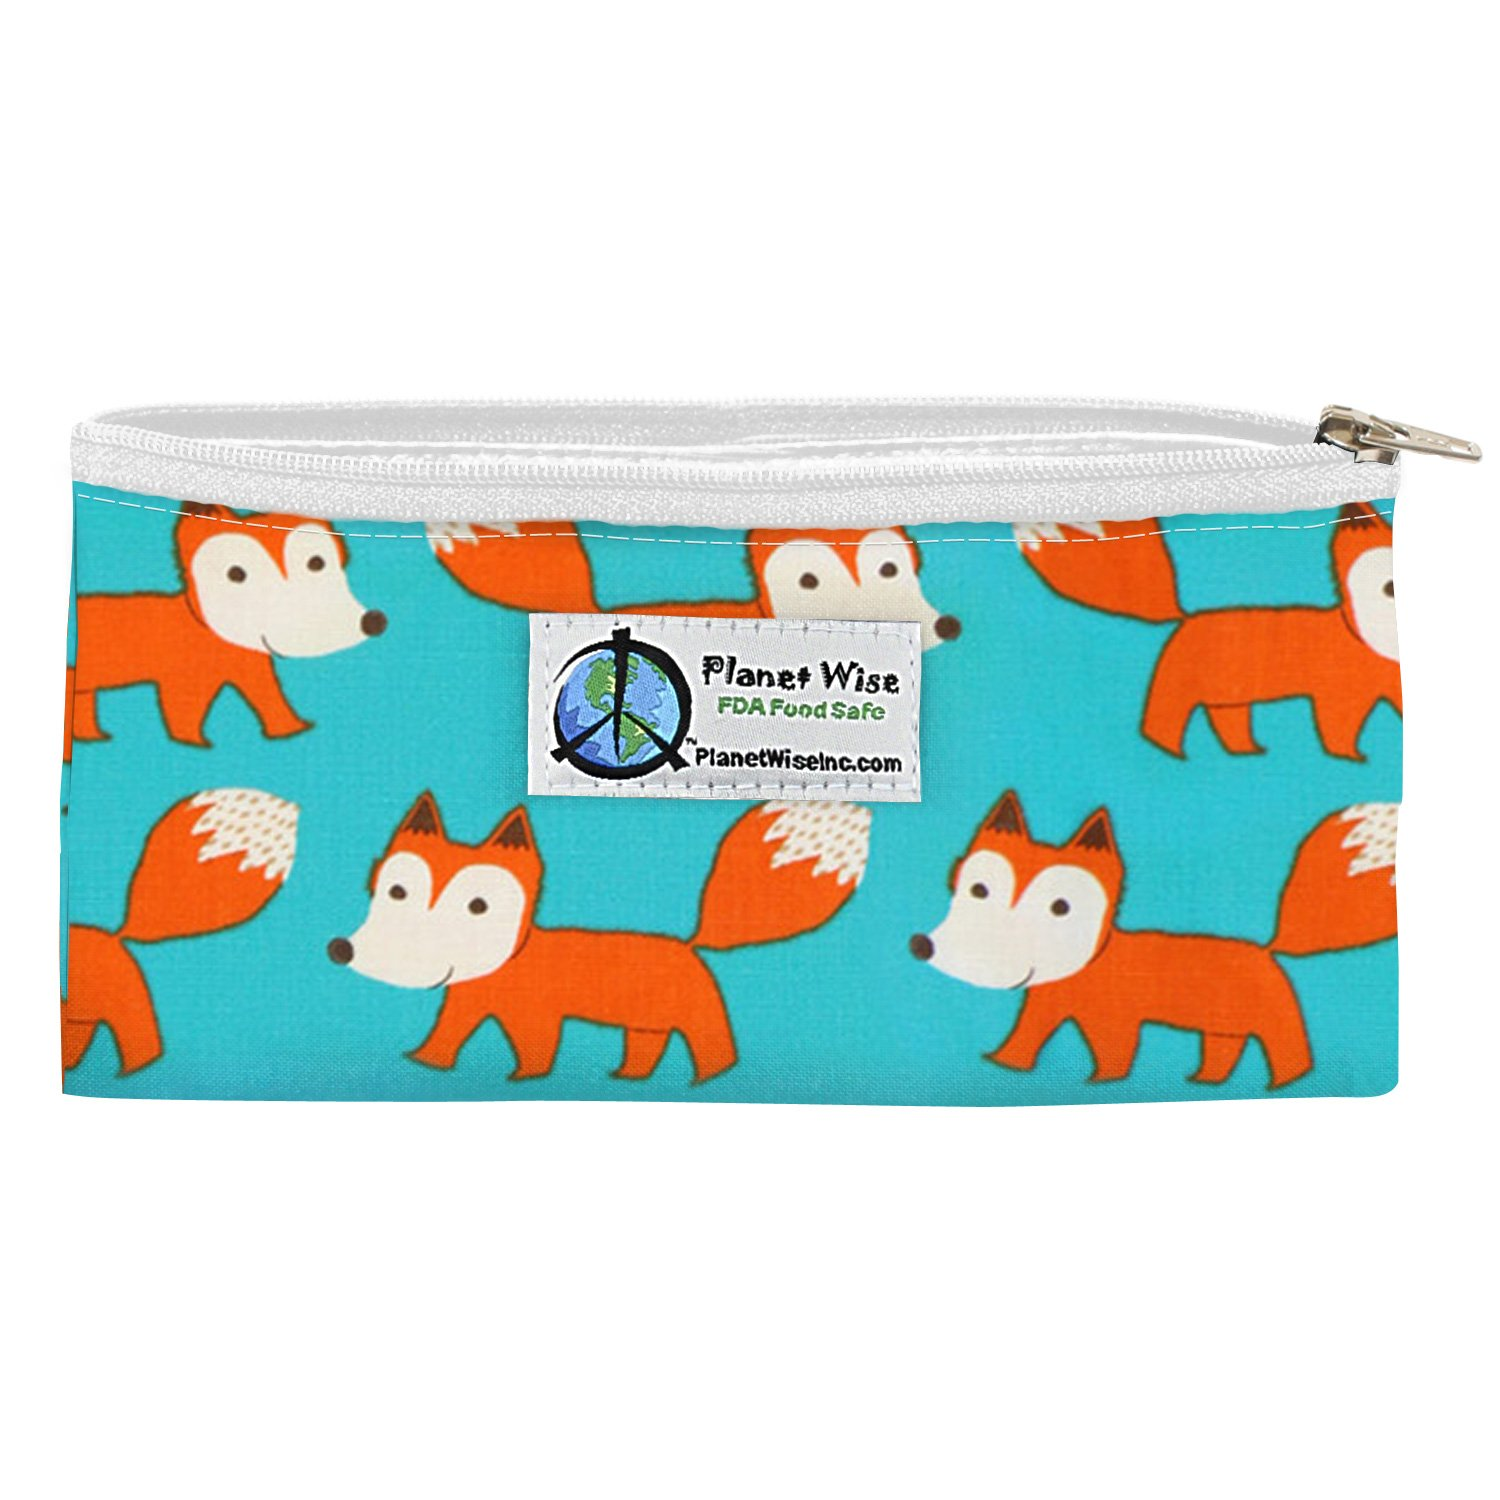 Planet Wise Reusable Zipper Sandwich and Snack Bags, Snack, Sly